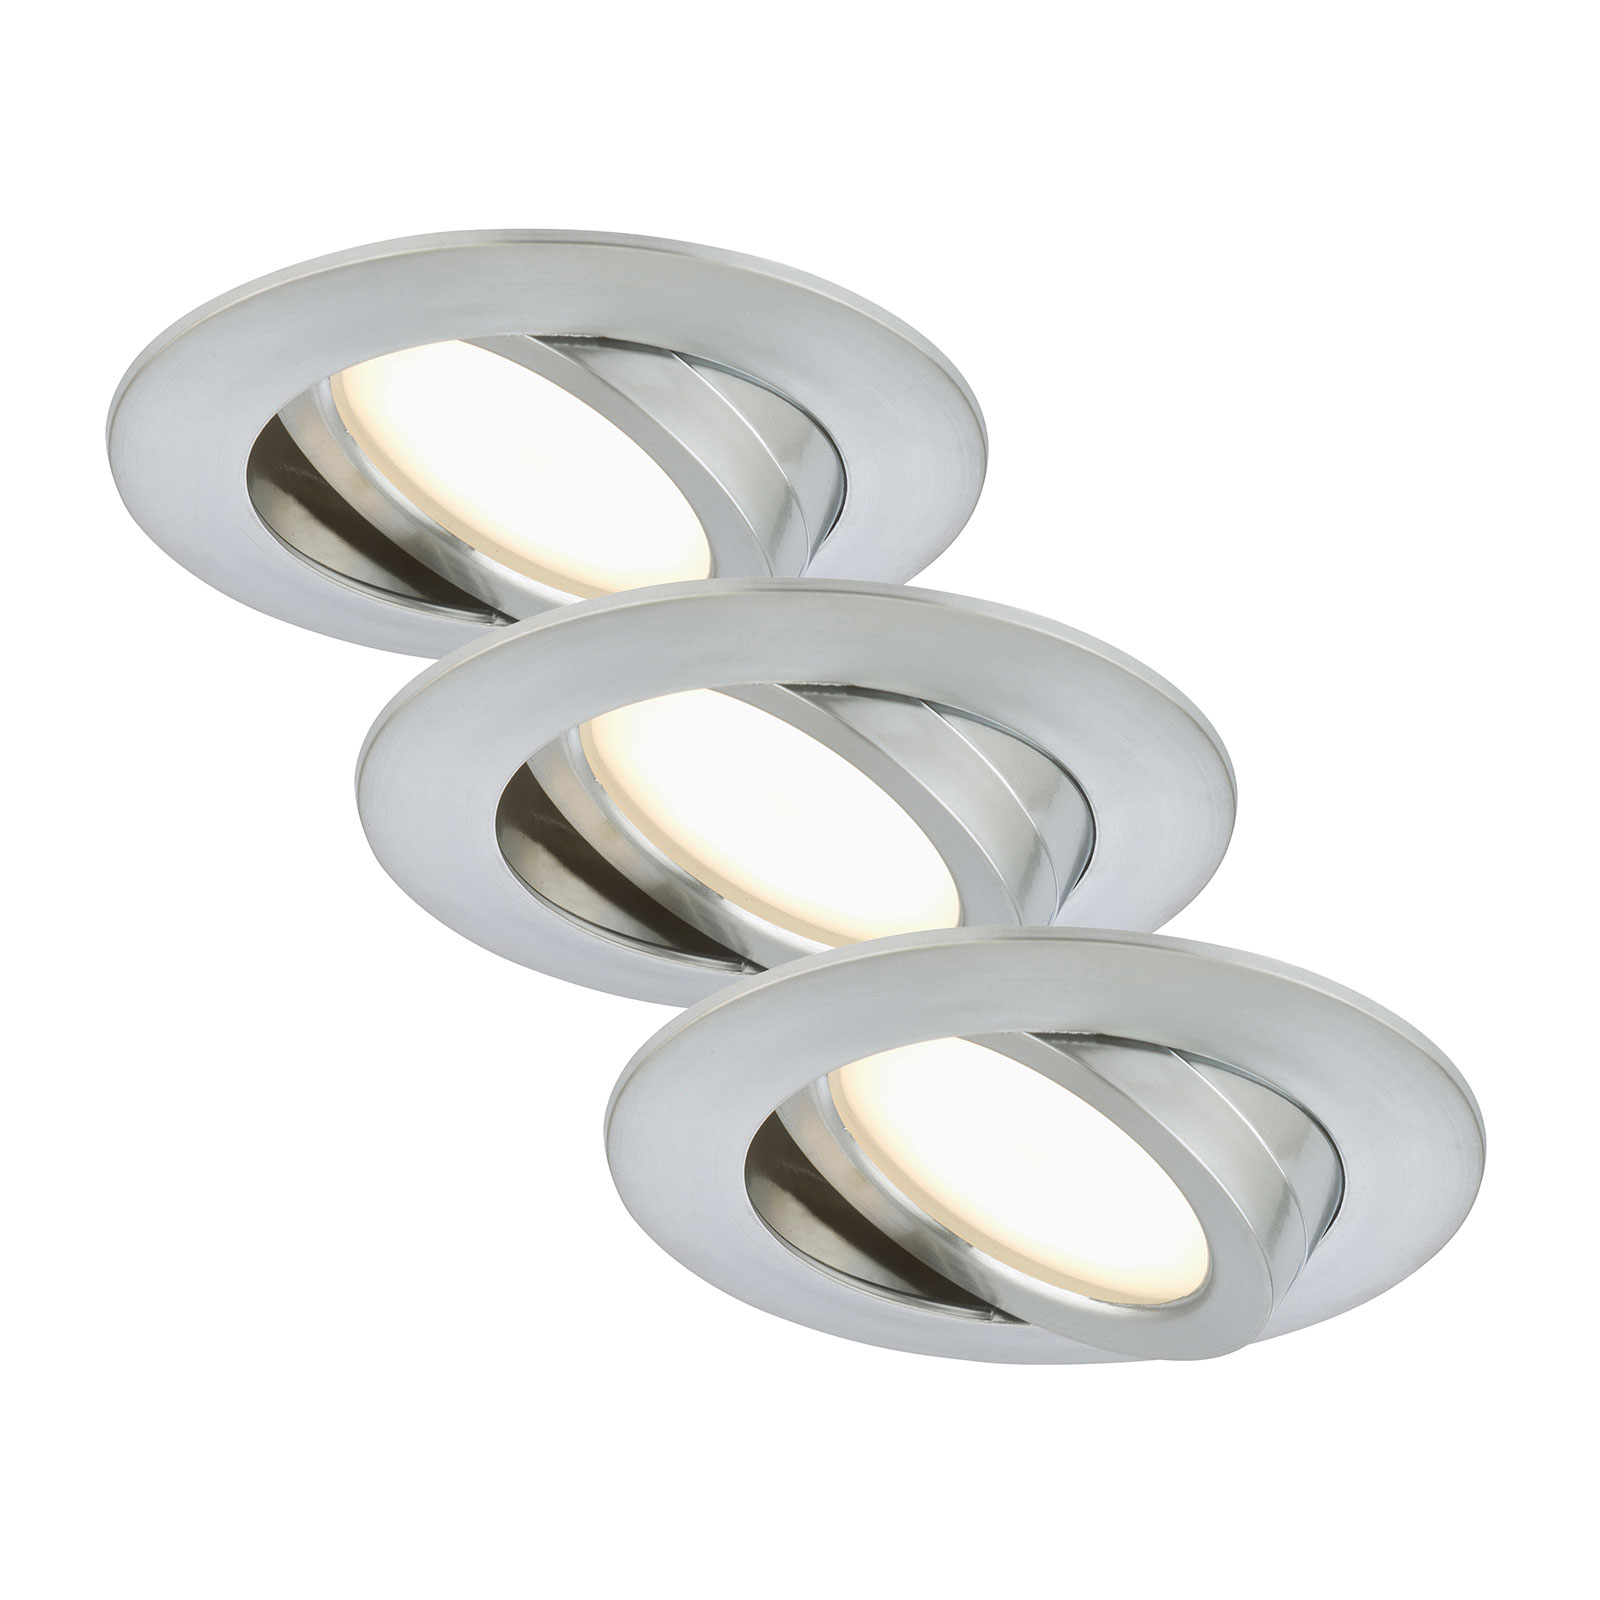 Set of three - LED recessed light Bert, pivotable_1510329_1